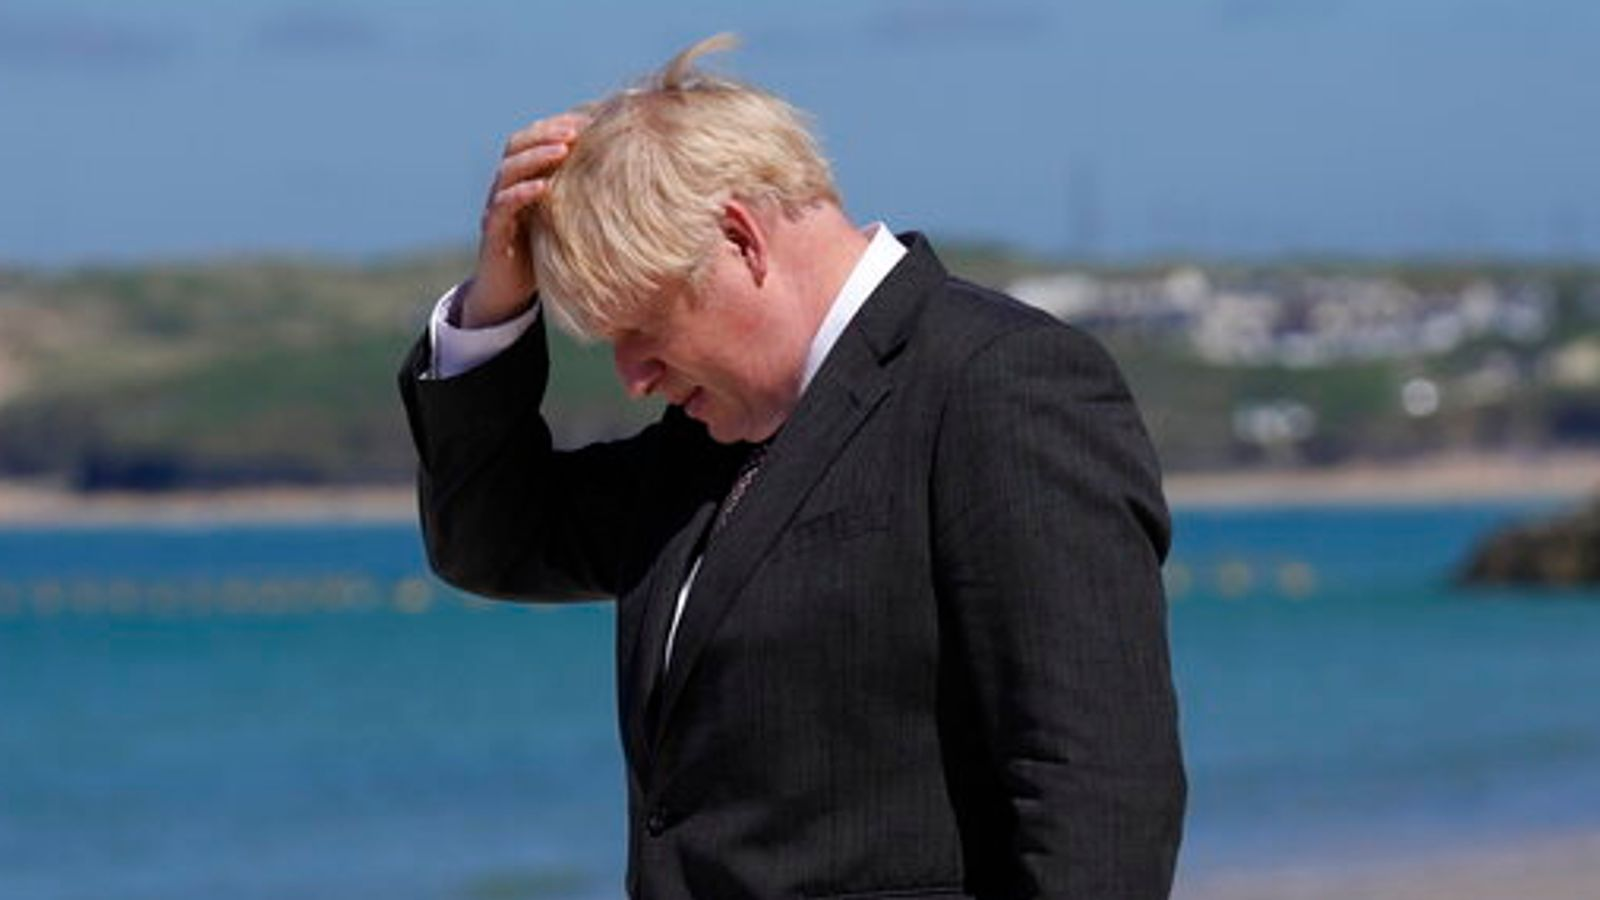 Boris Johnson scored an own goal over Brexit at G7 despite favourable conditions